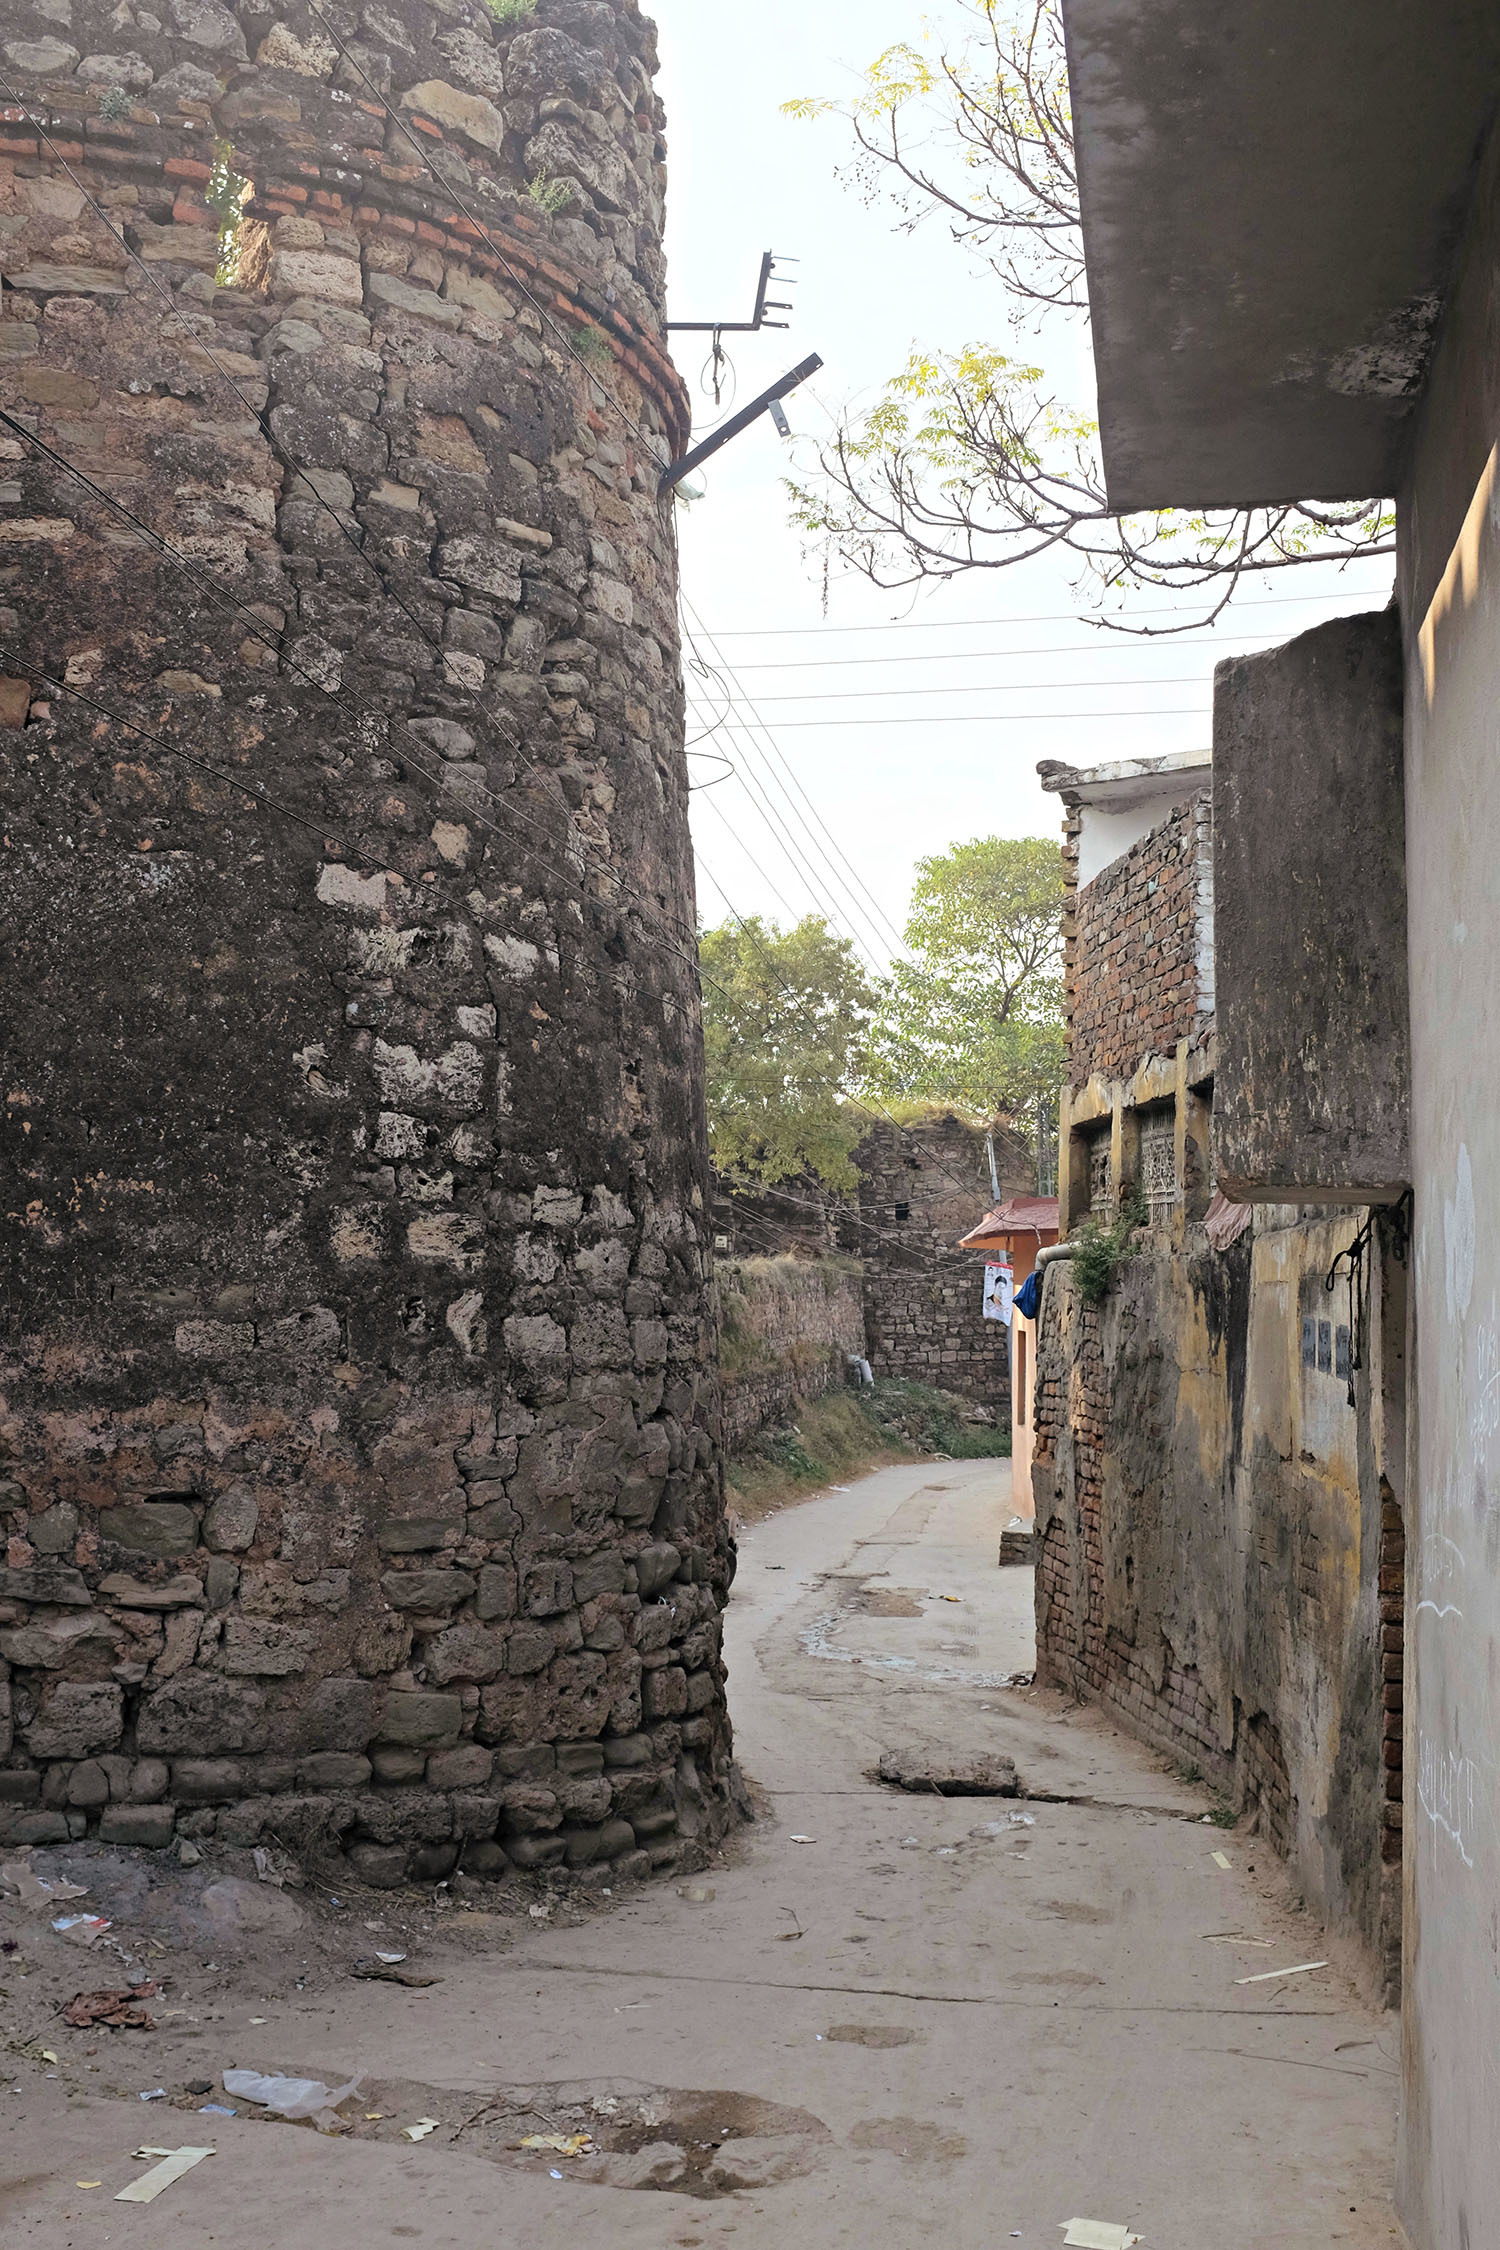 Today, Rawat fort is sorrounded by houses from all sides.